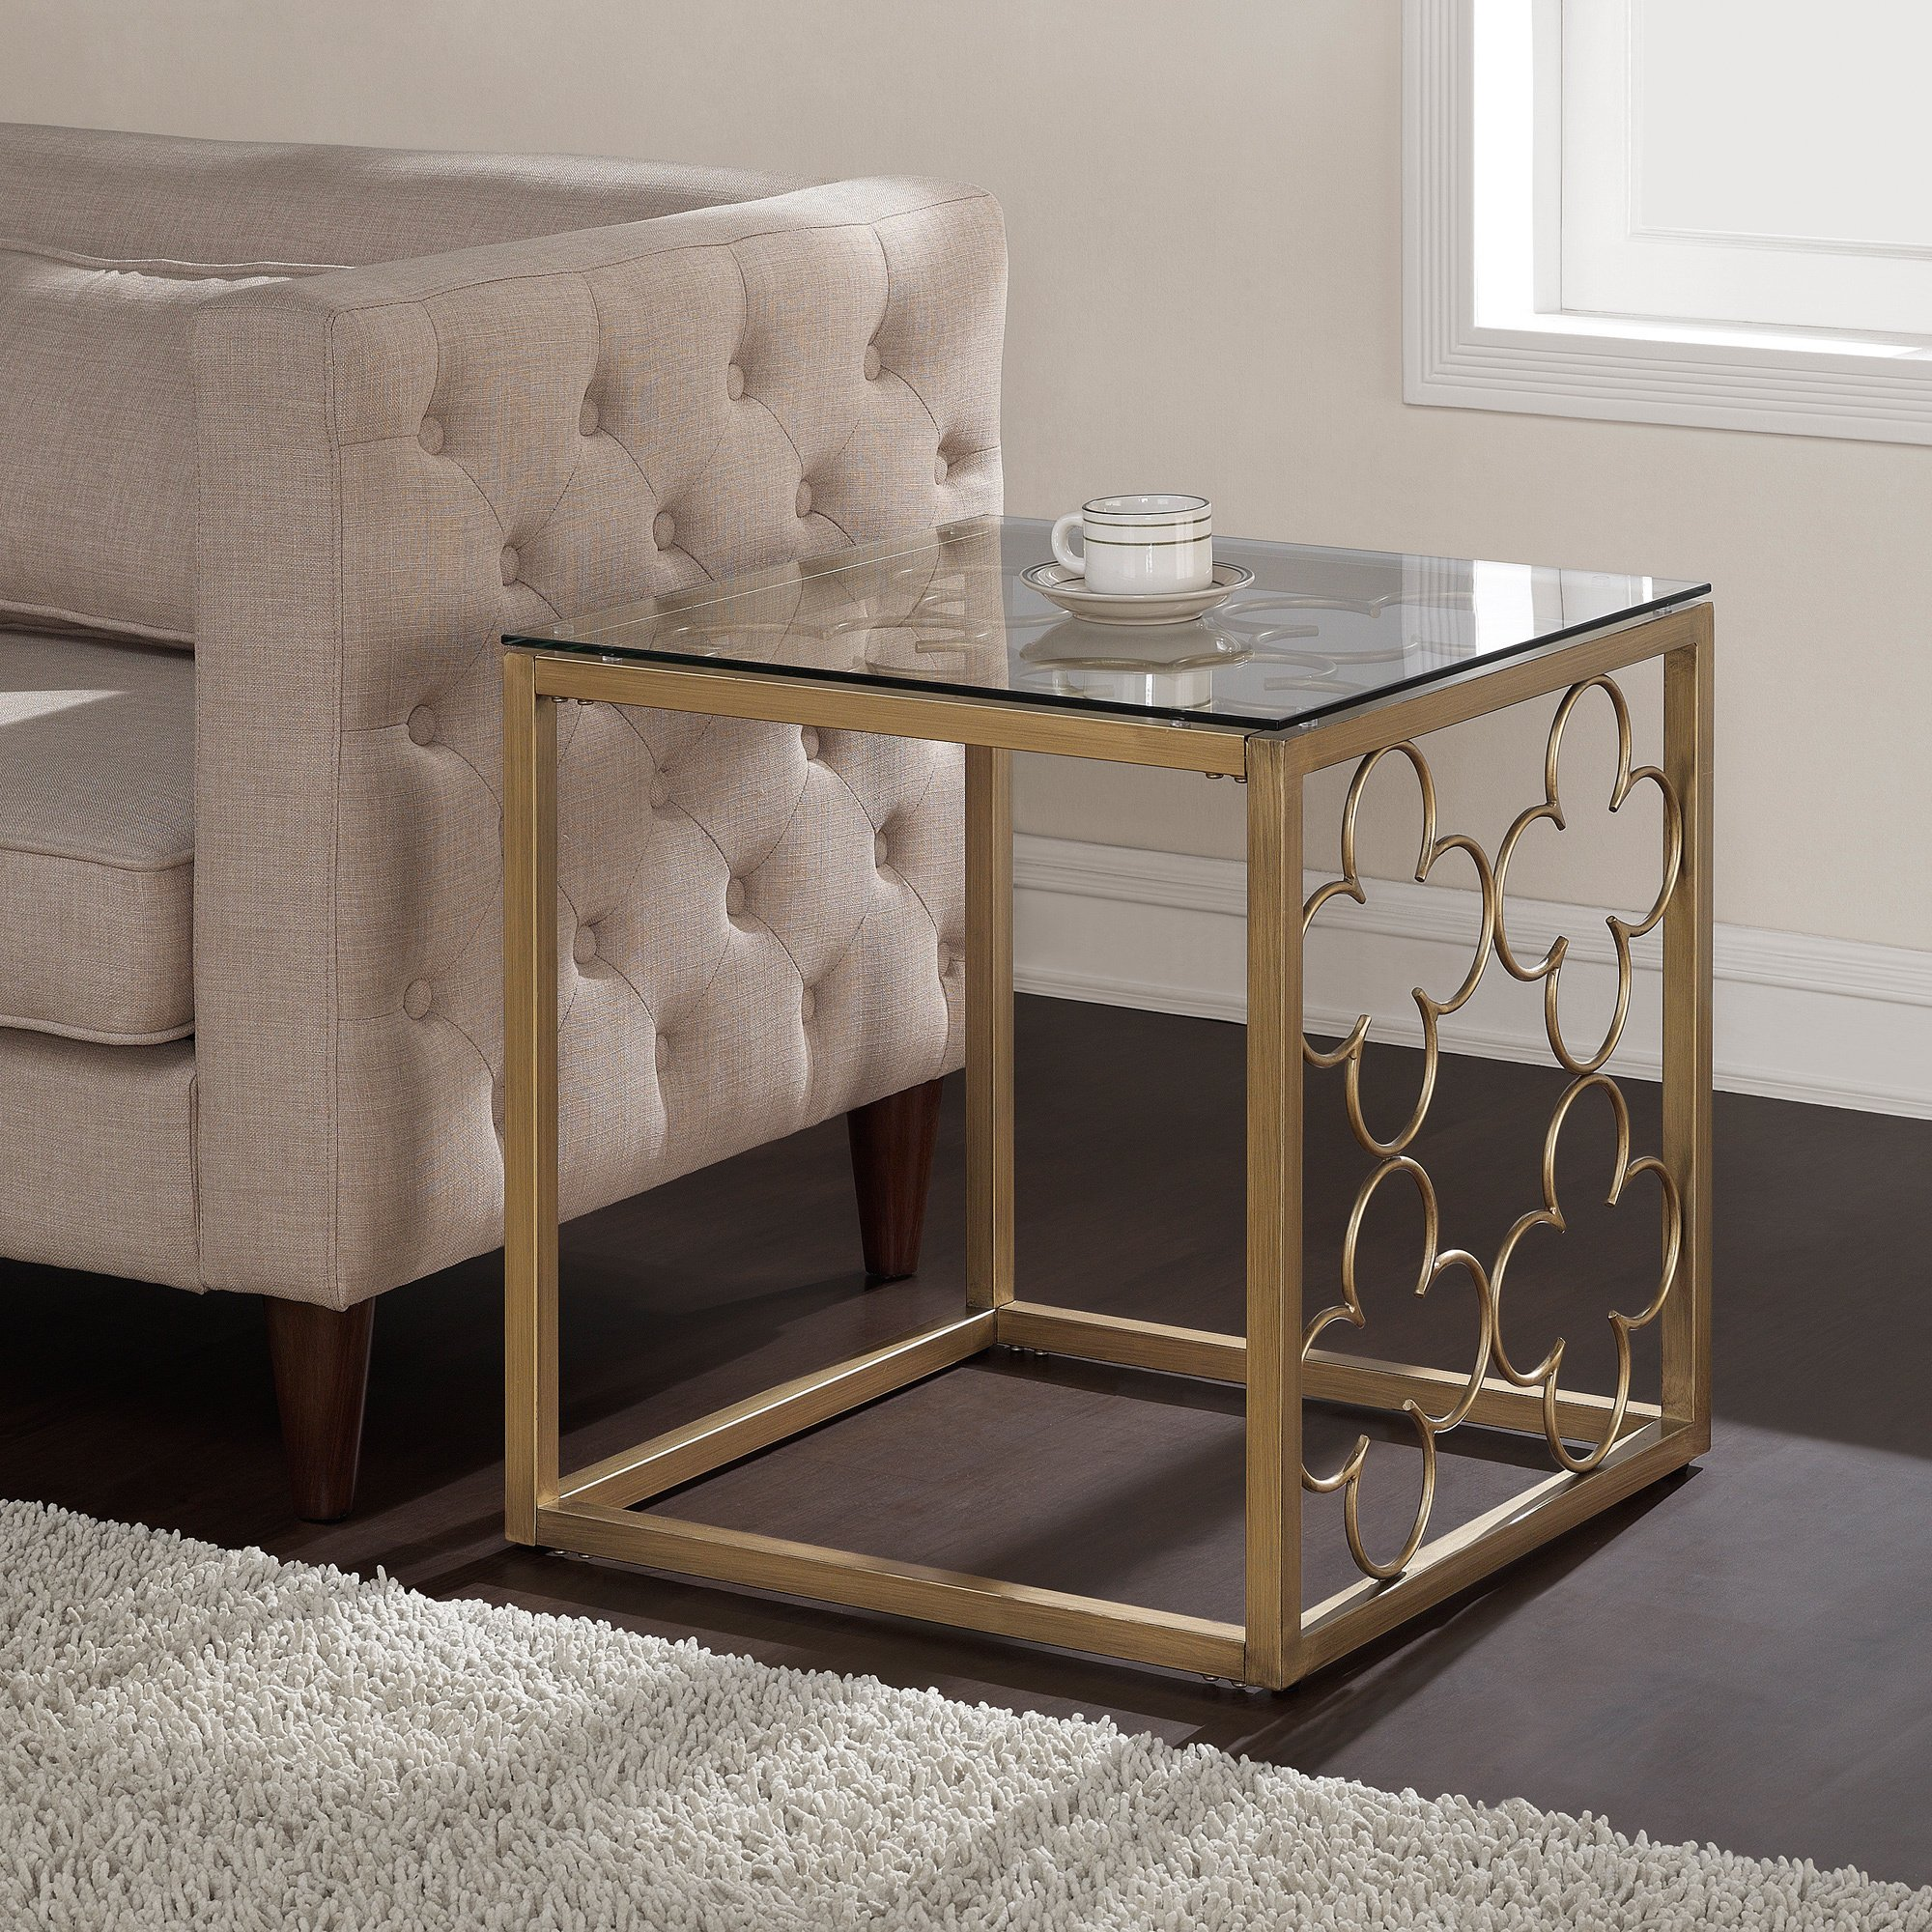 the curated nomad quatrefoil goldtone metal and glass end table gold wood accent coastal decor lamps diy legs ideas solid tables with storage pedestal side vintage drawers ikea